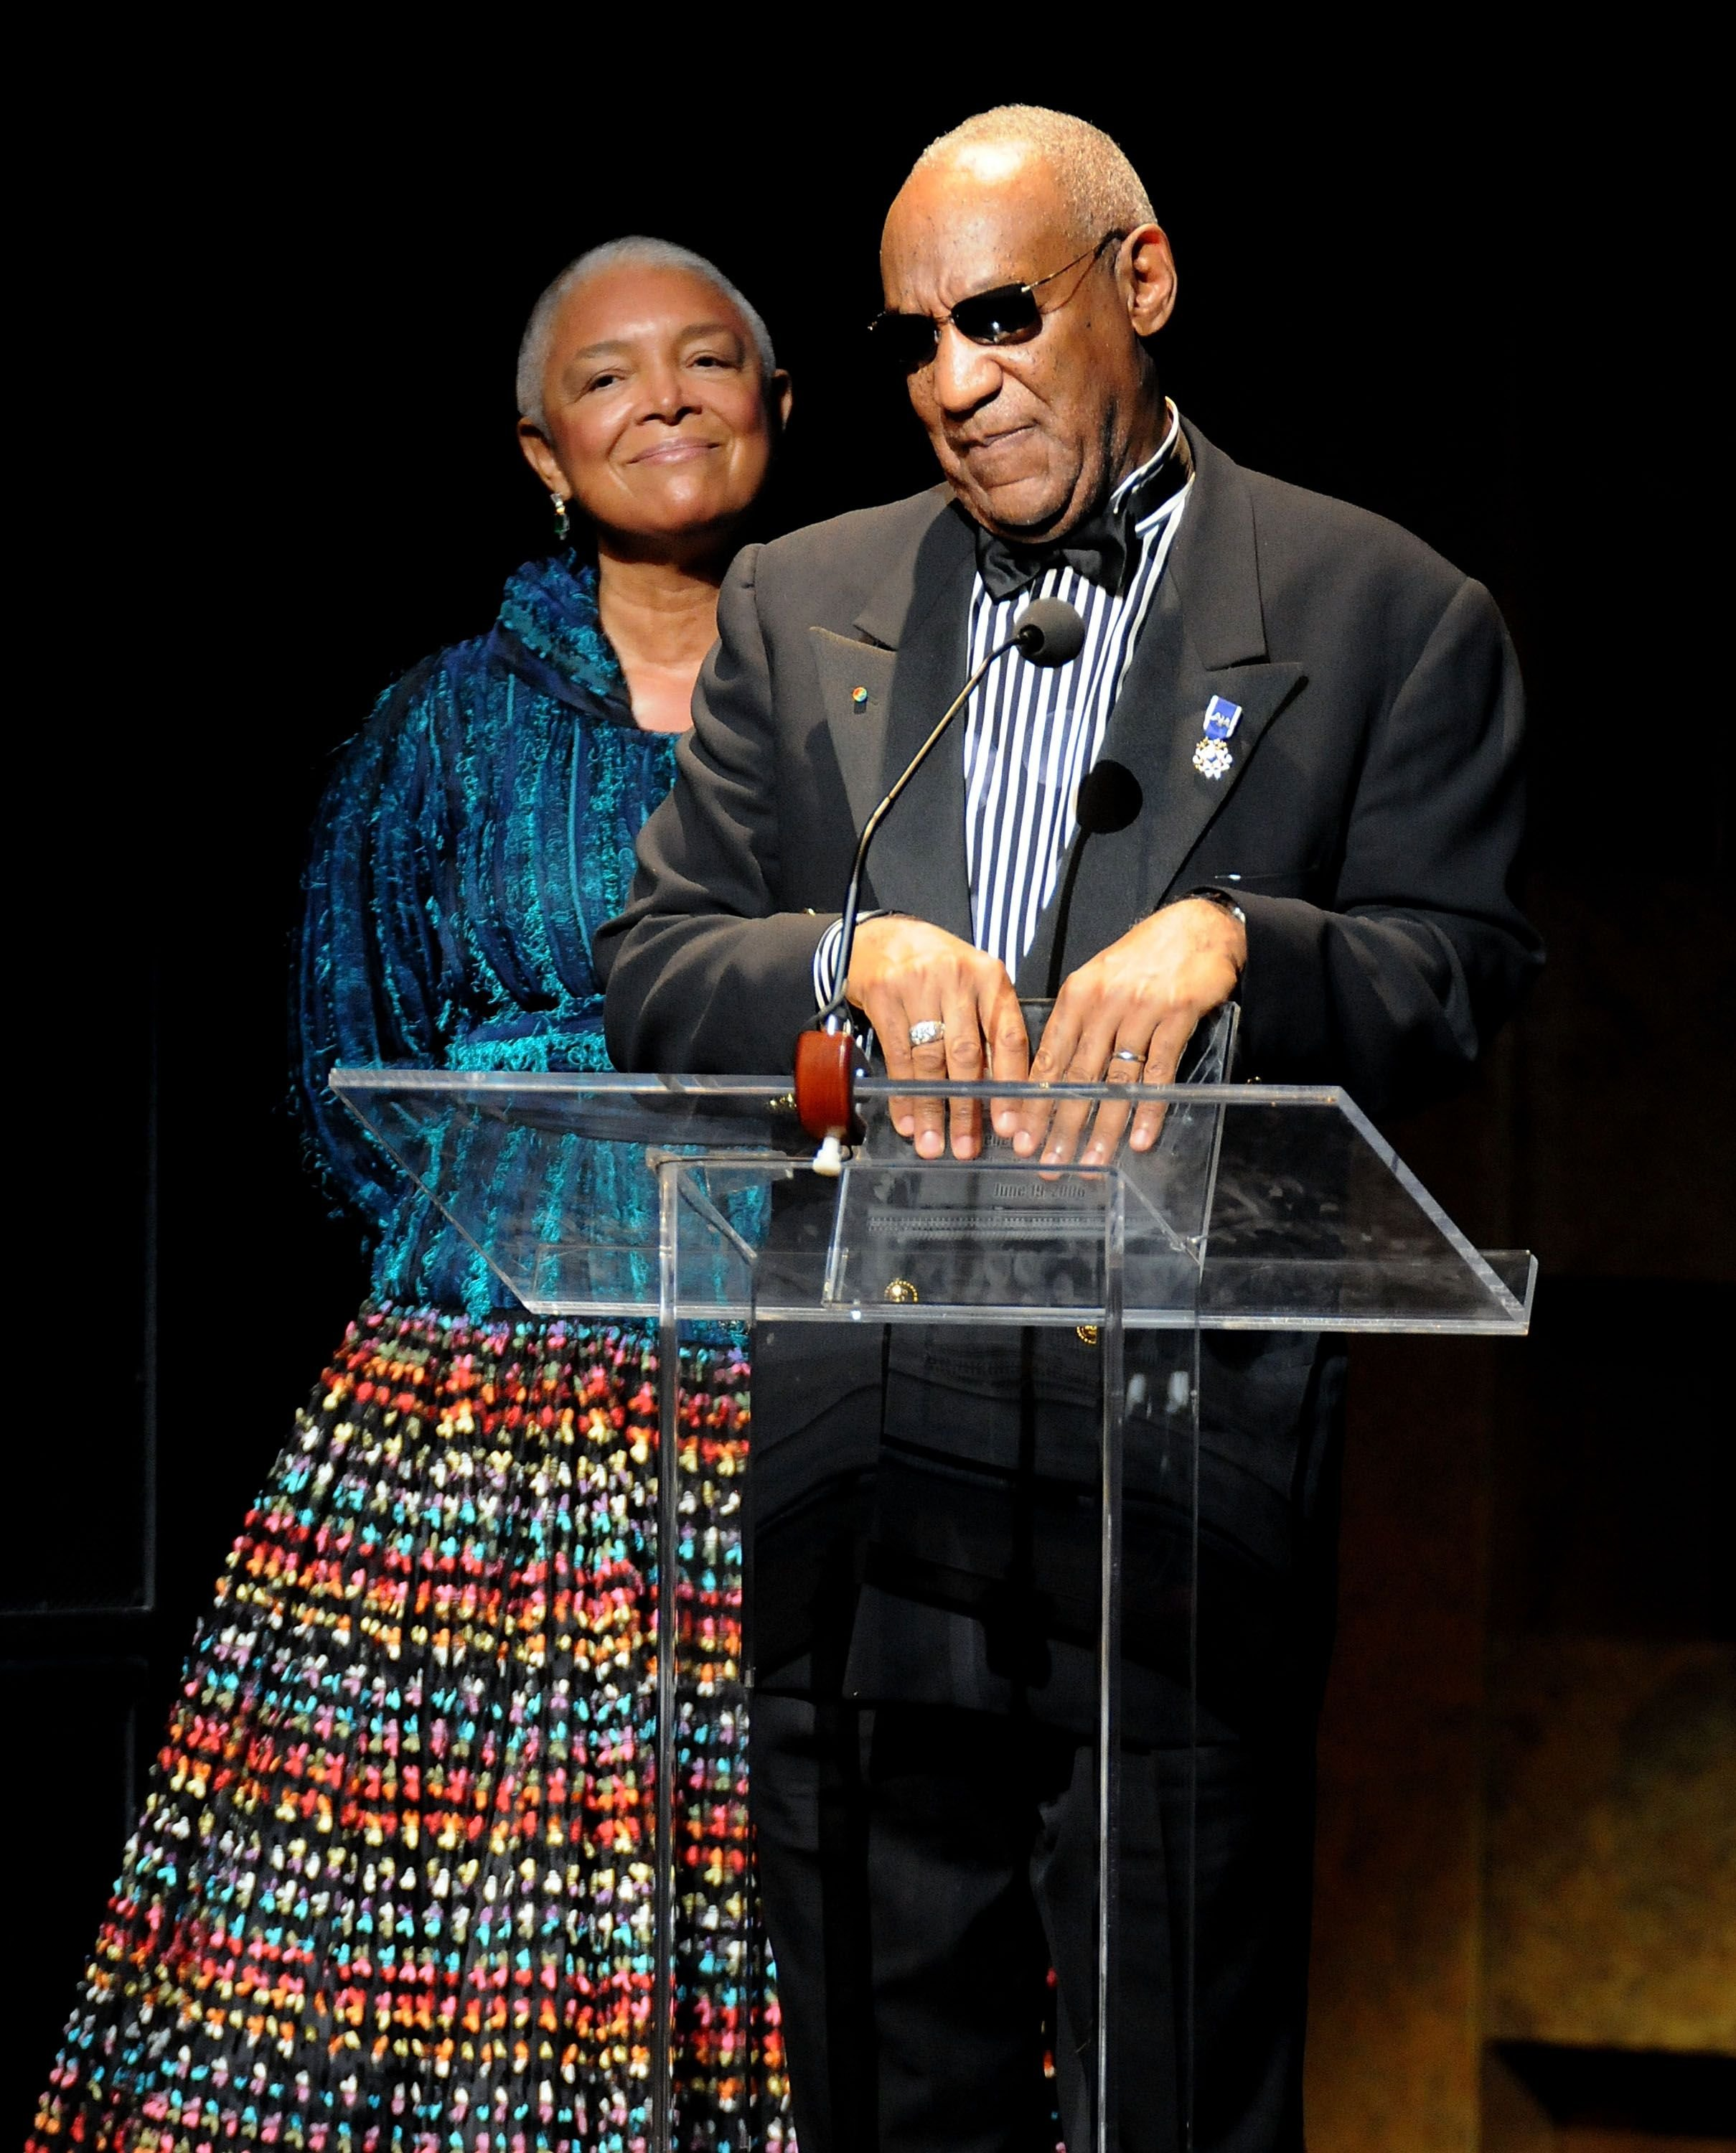 Camille and Bill Cosby at the Apollo Theater's 75th Anniversary Gala in 2009 in New York | Source: Getty Images